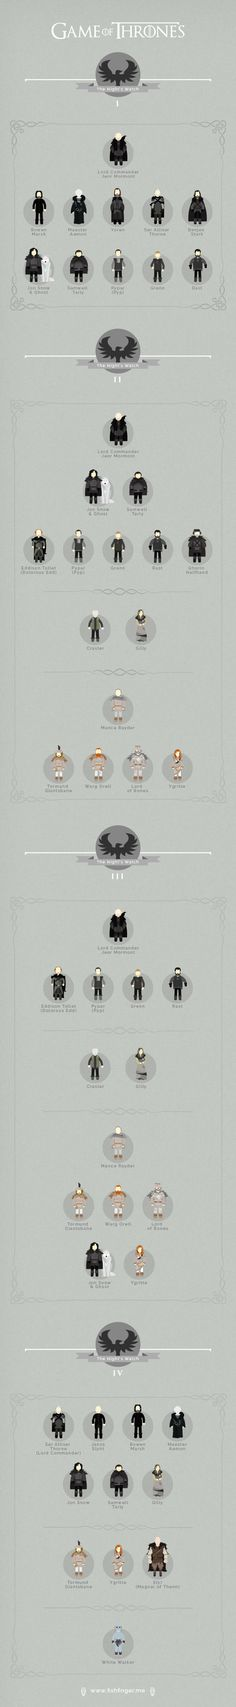 Game of Thrones Infographic - Graphicblog - Night's Watch